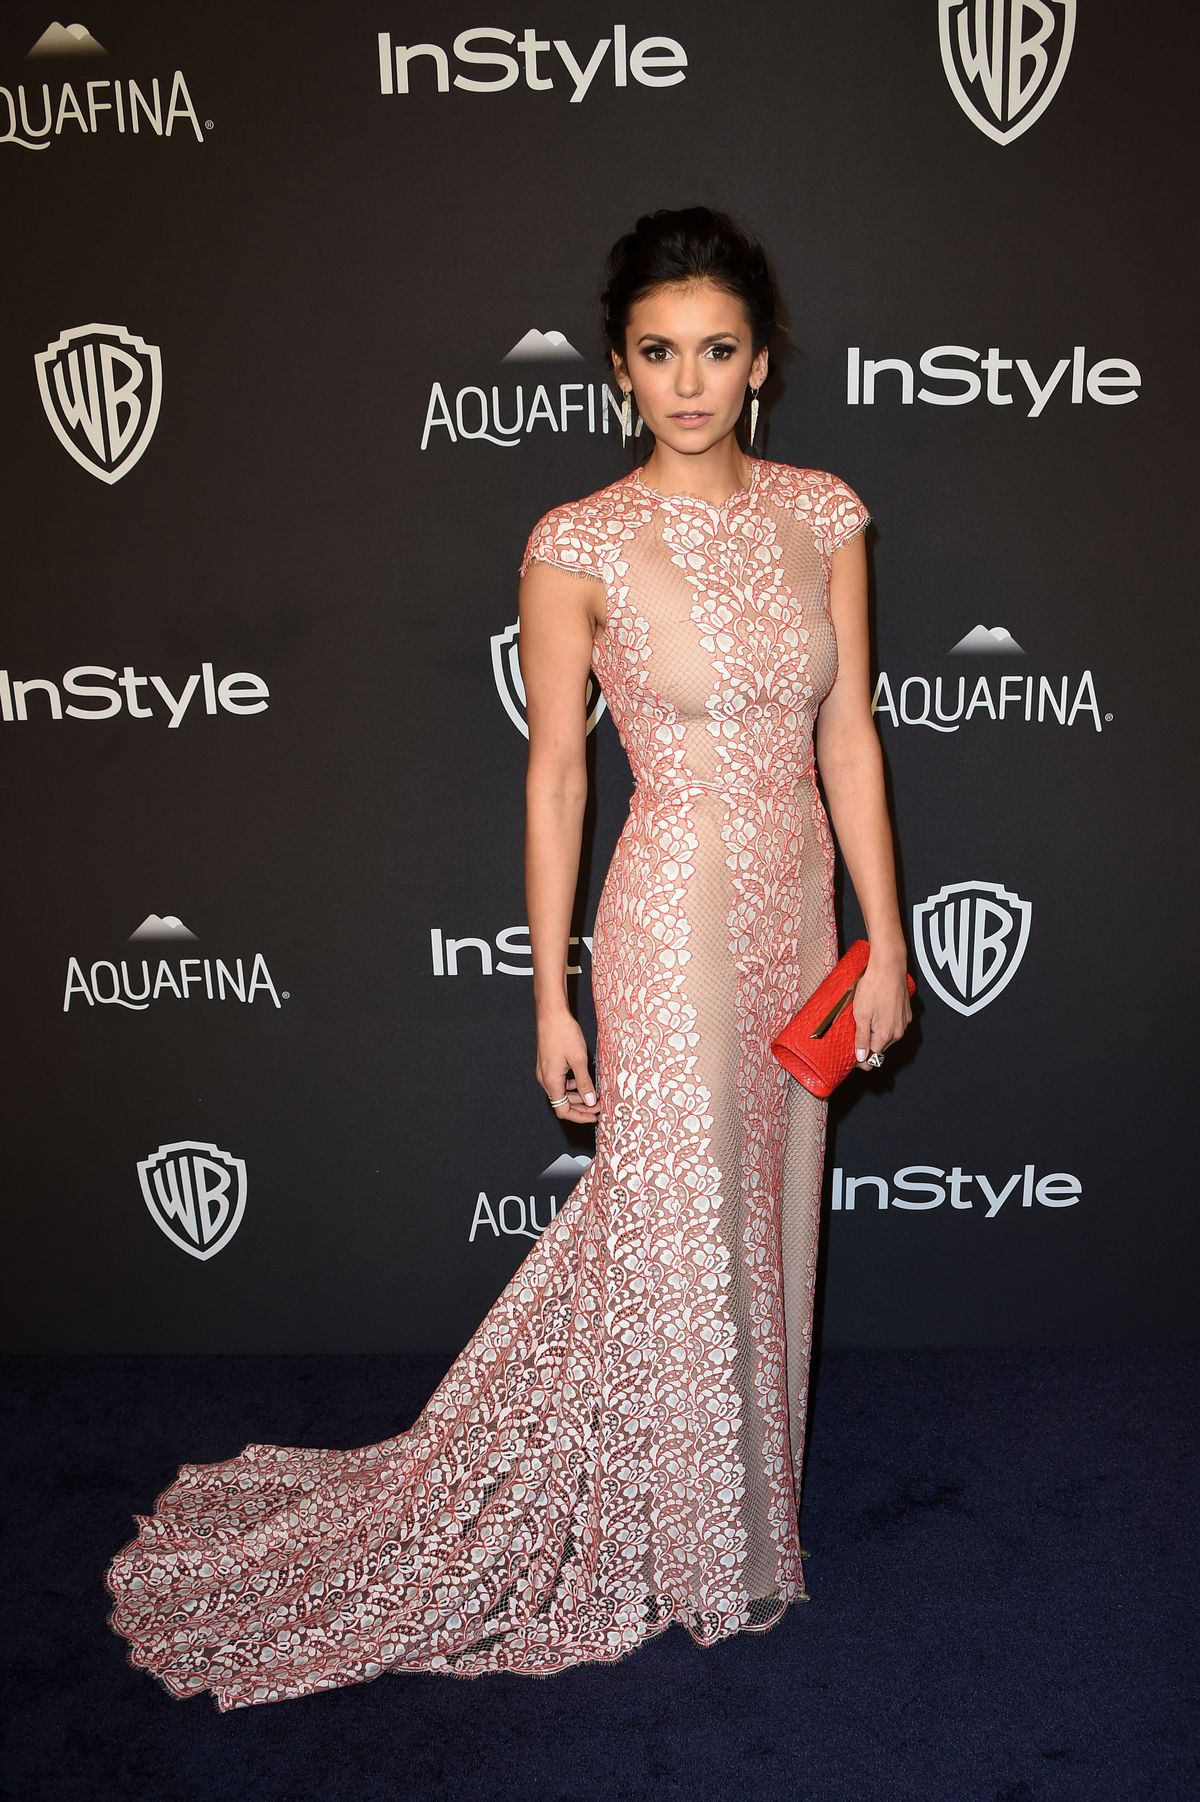 Actress Nina Dobrev attends the 2016 InStyle And Warner Bros. 73rd Annual Golden Globes after party, in Beverly Hills, California, on January 10, 2015. AFP PHOTO / Mark Ralston / AFP / MARK RALSTON (Photo credit should read MARK RALSTON/AFP/Getty Images)